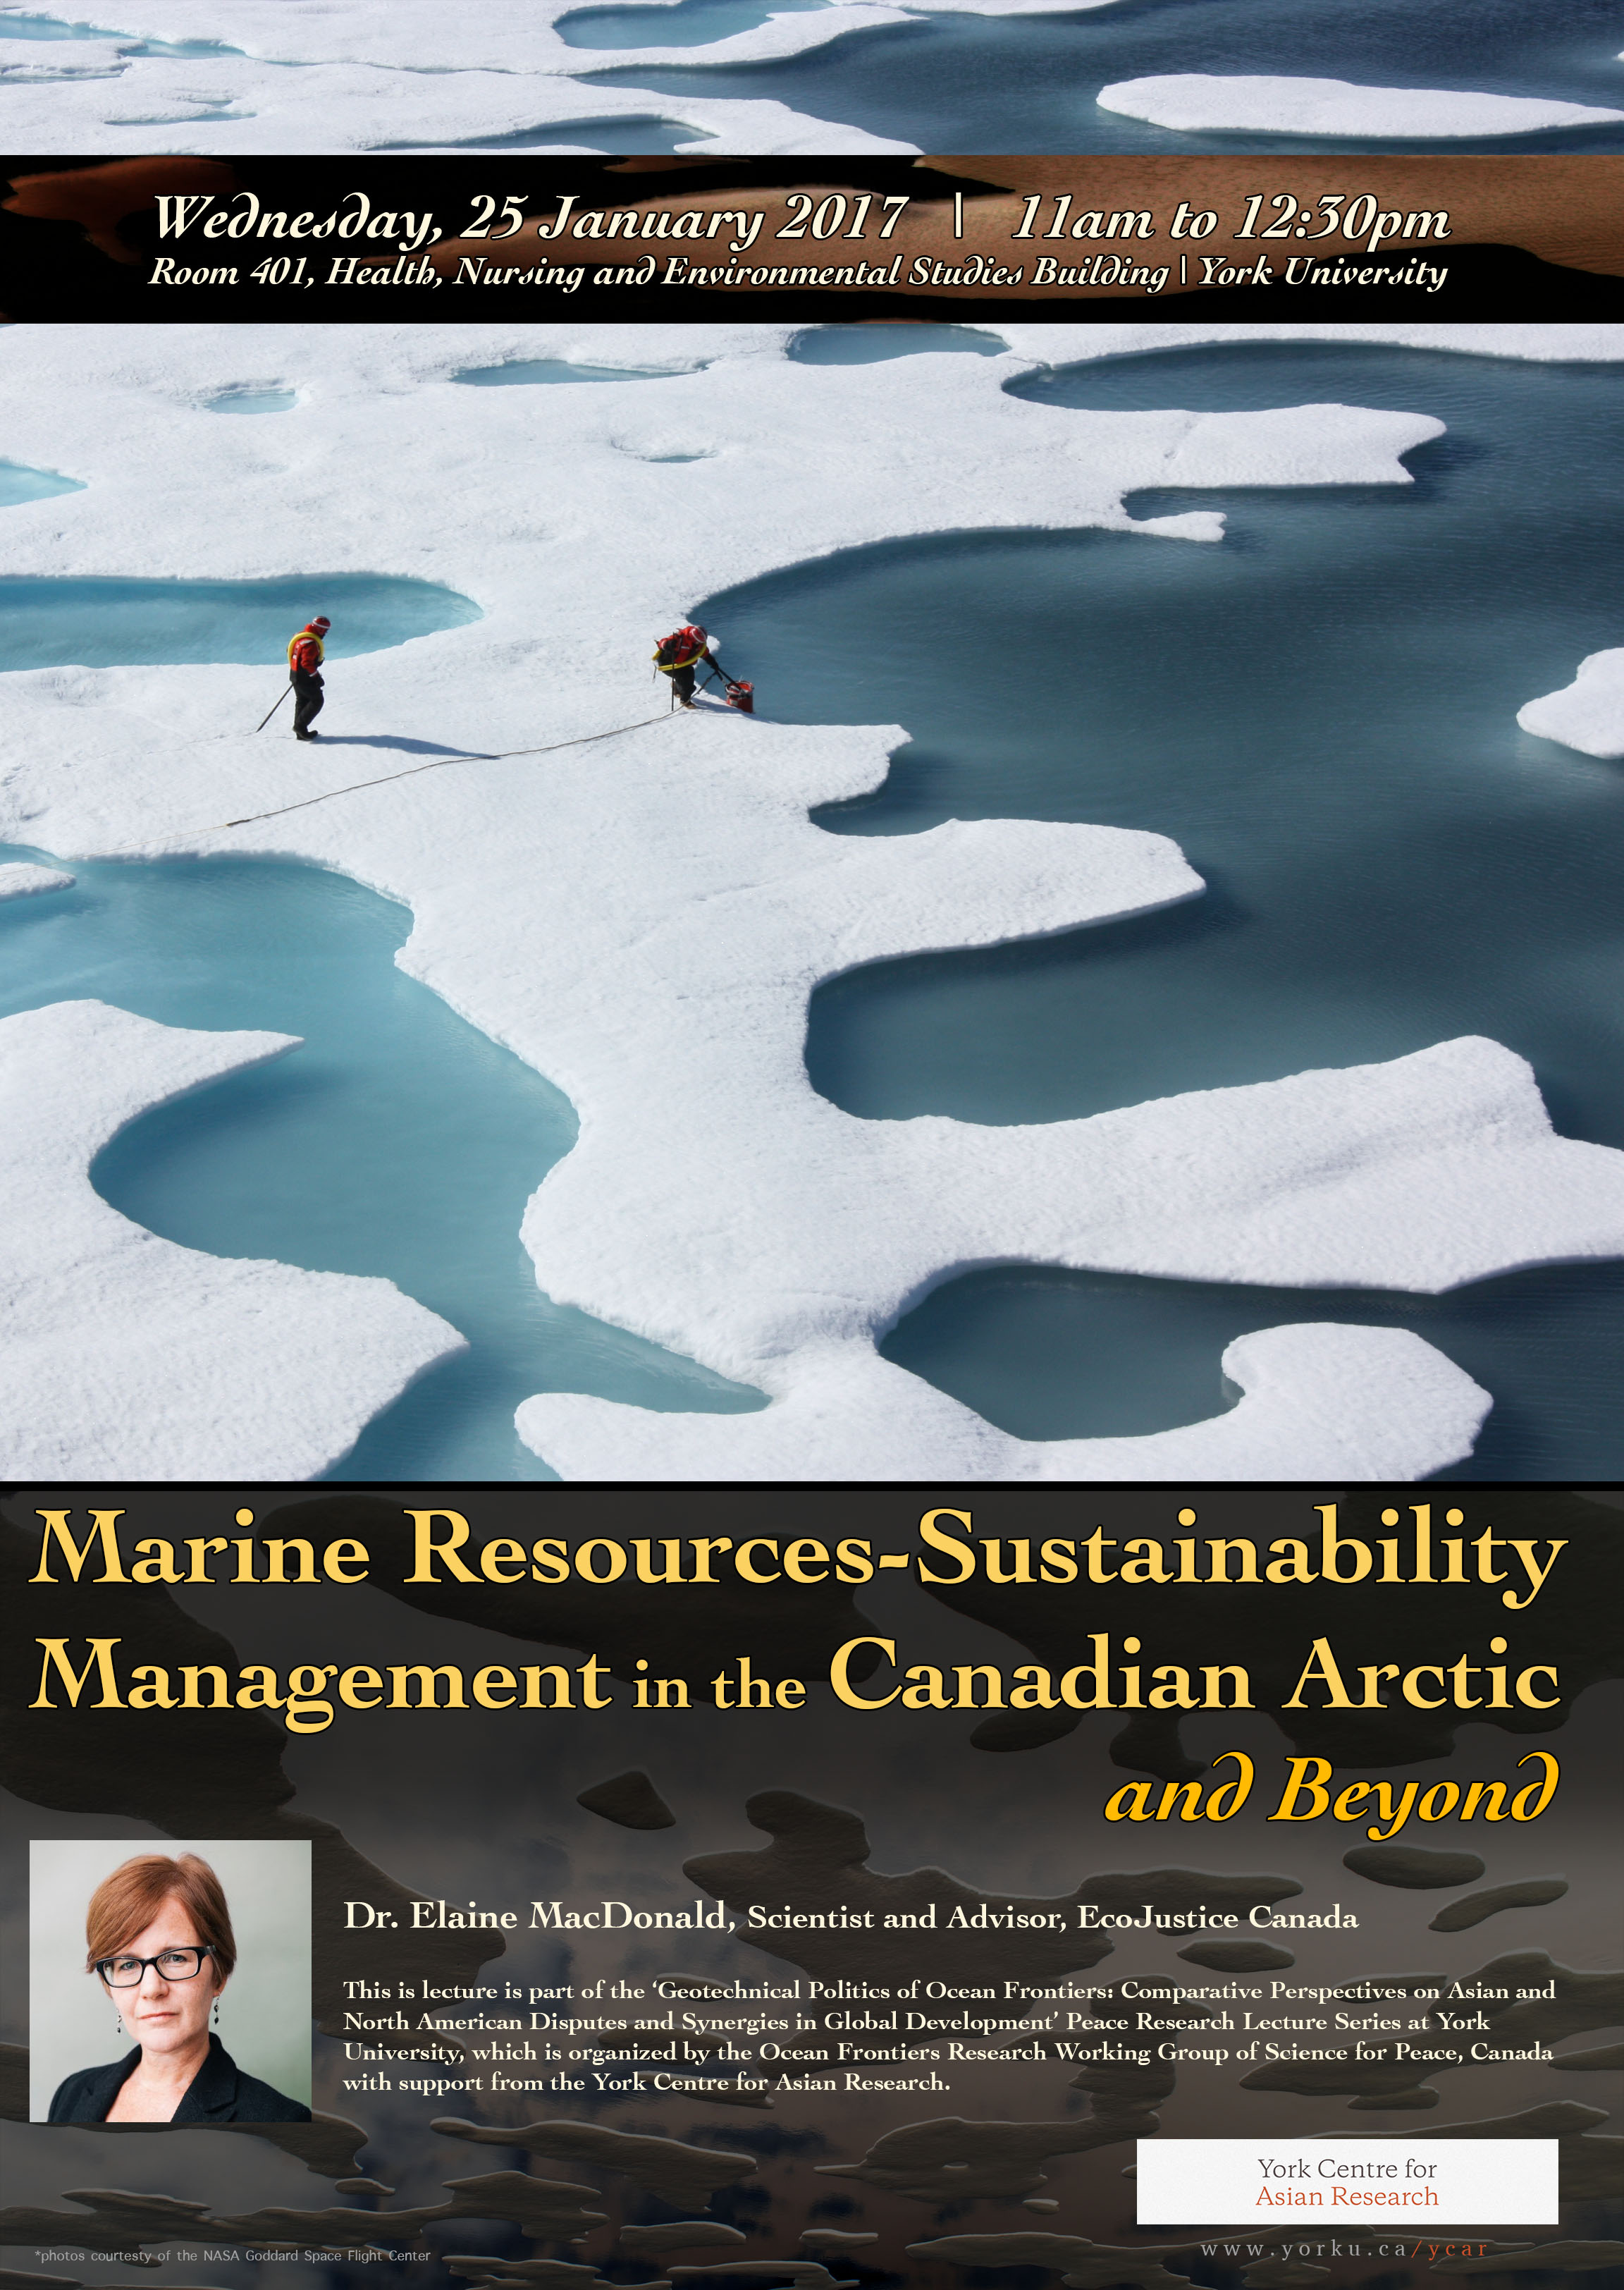 CANCELLED - Marine Resources-Sustainability Management in the Canadian Arctic and Beyond @ Room 401, Health, Nursing and Environmental Studies Building  | Toronto | Ontario | Canada